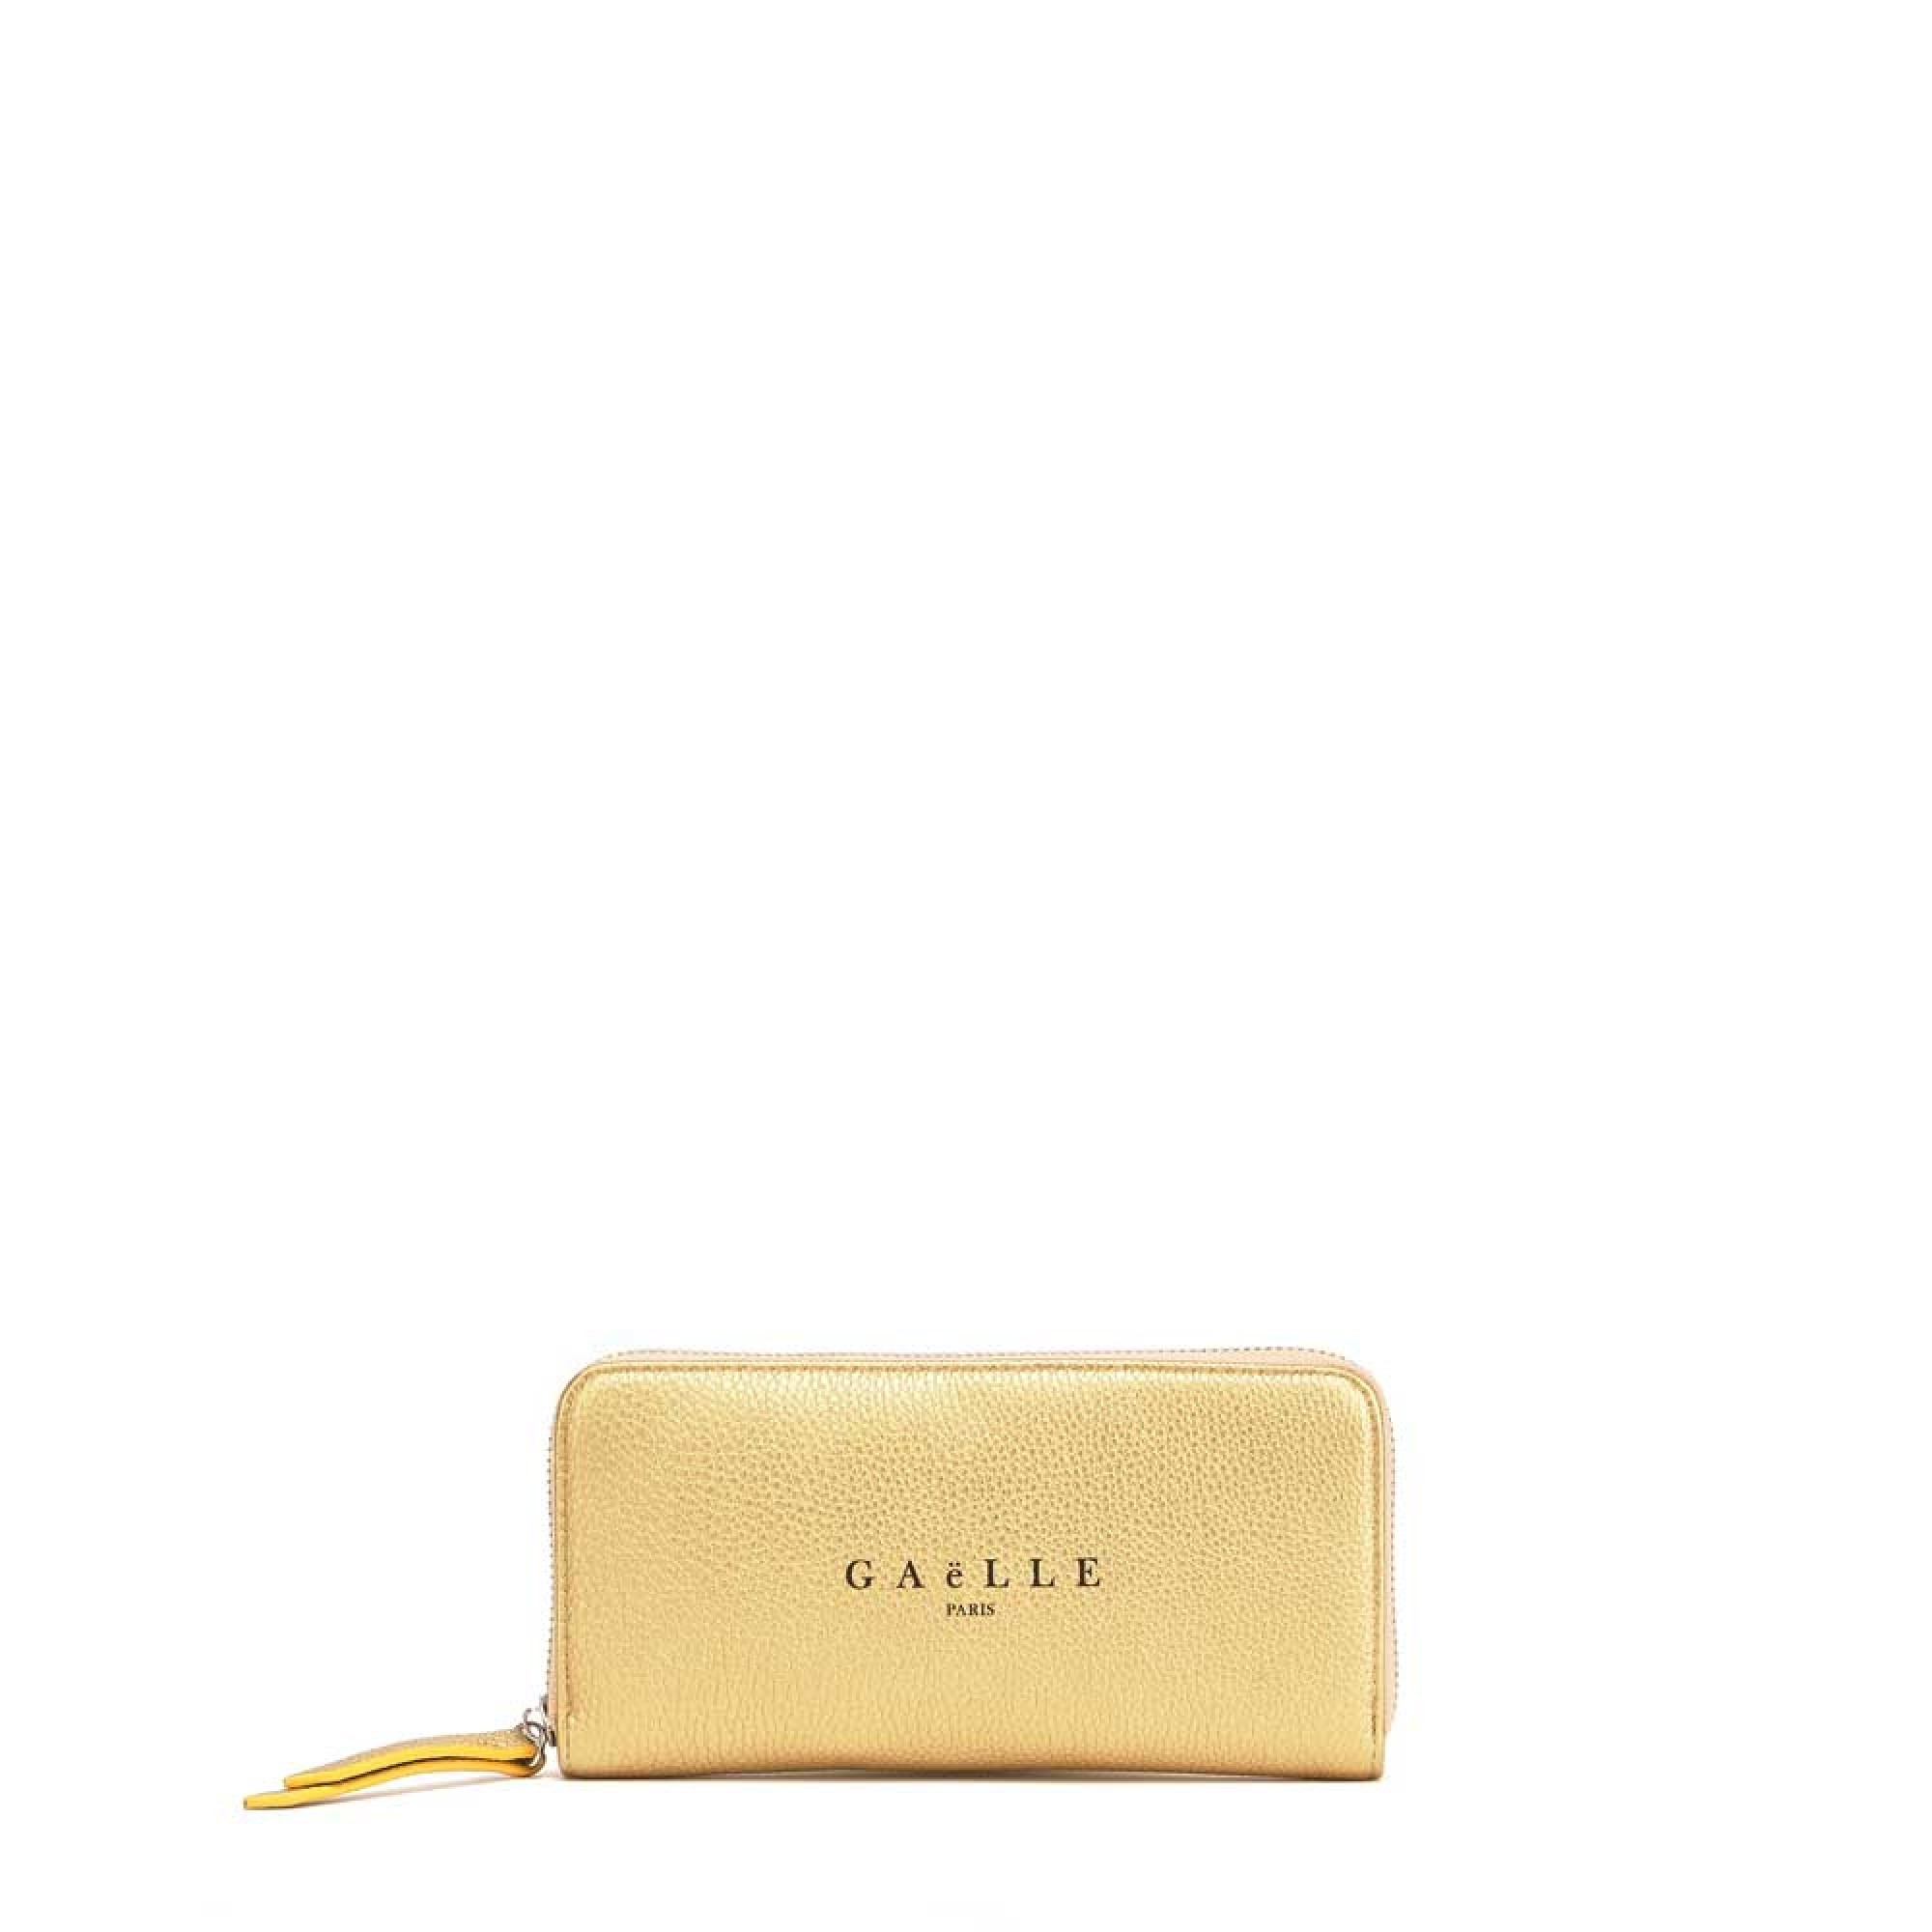 WALLET - GBDA1413 - GAELLE PARIS